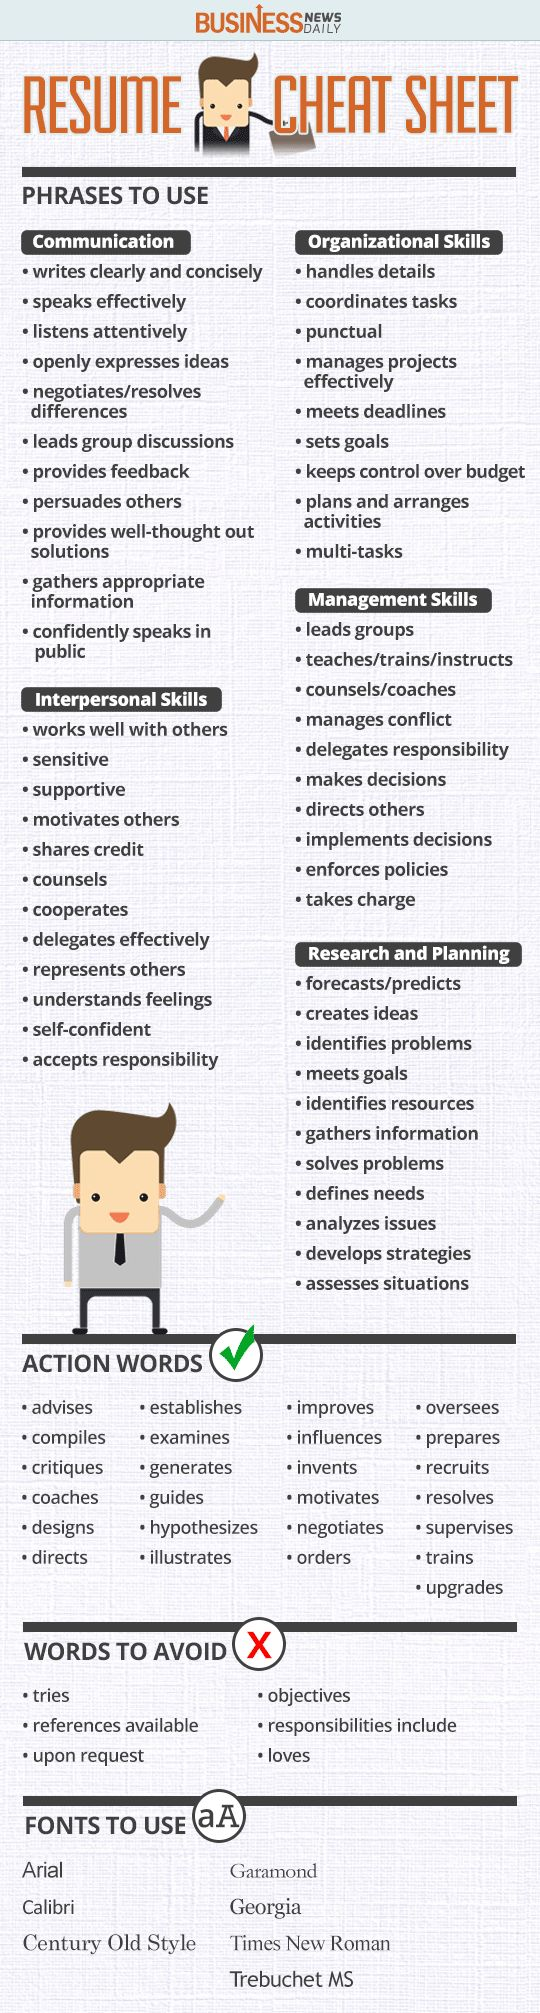 Opposenewapstandardsus  Ravishing  Ideas About Resume On Pinterest  Cv Format Resume  With Licious Resume Cheat Sheet Infographic Andrews Almost Done With A Complete Unit On Employment Which With Cute My Professional Resume Also Easy Resume Template Free In Addition Airline Pilot Resume And How To Send A Resume As Well As How To Do References On A Resume Additionally Sales Manager Resume Sample From Pinterestcom With Opposenewapstandardsus  Licious  Ideas About Resume On Pinterest  Cv Format Resume  With Cute Resume Cheat Sheet Infographic Andrews Almost Done With A Complete Unit On Employment Which And Ravishing My Professional Resume Also Easy Resume Template Free In Addition Airline Pilot Resume From Pinterestcom